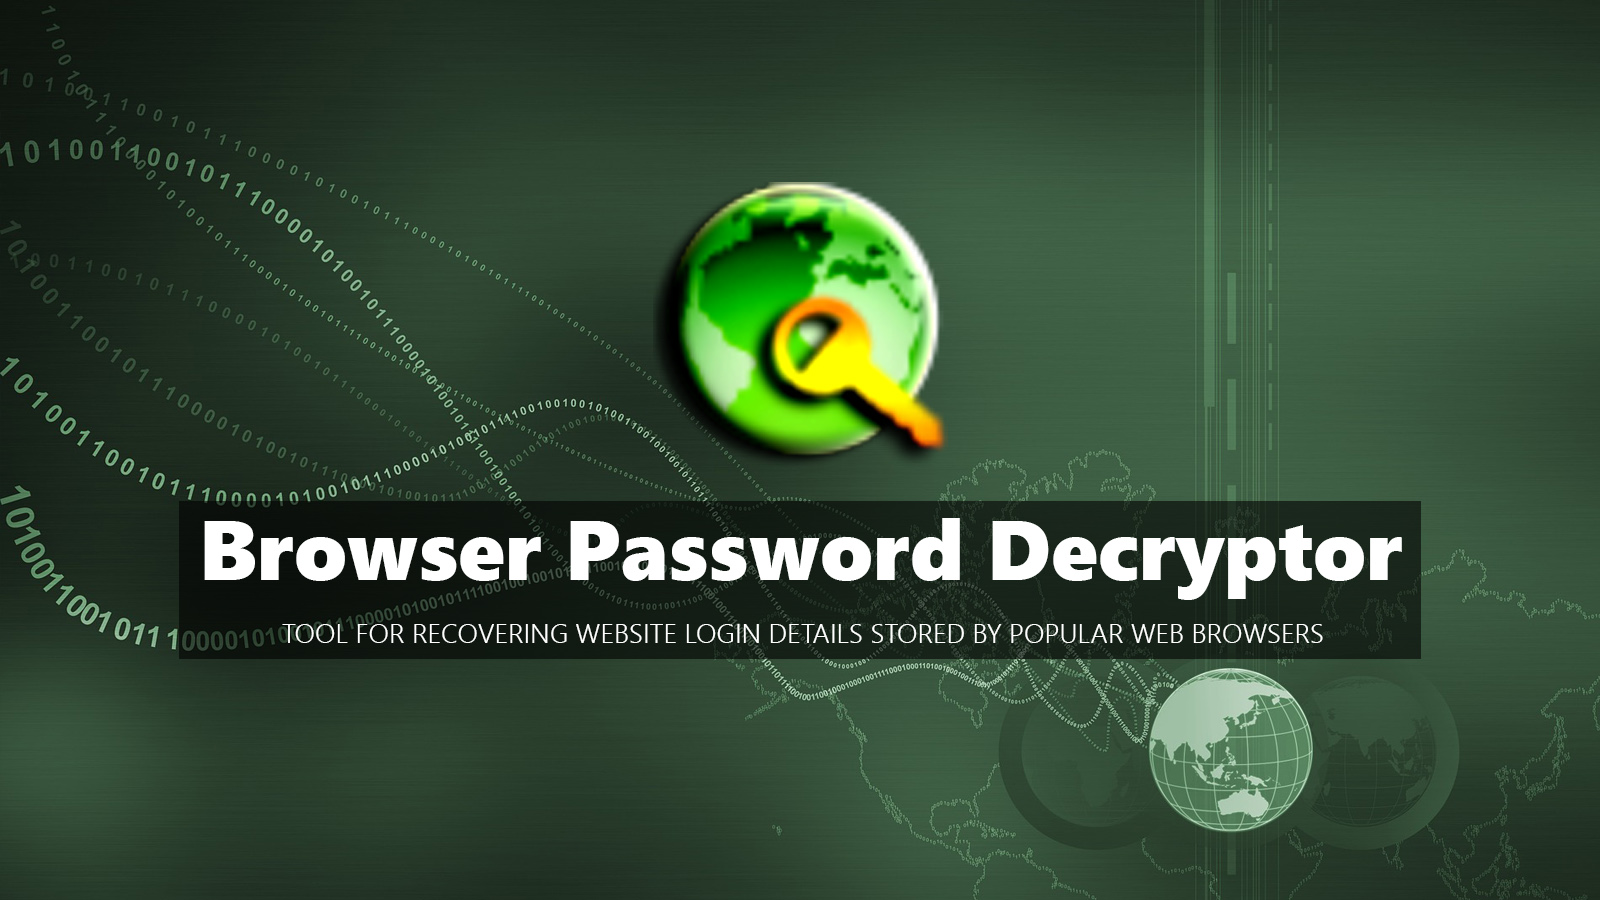 Browser Password Decryptor  Tool For Recovering Website Login Details Stored By Popular Web Browsers